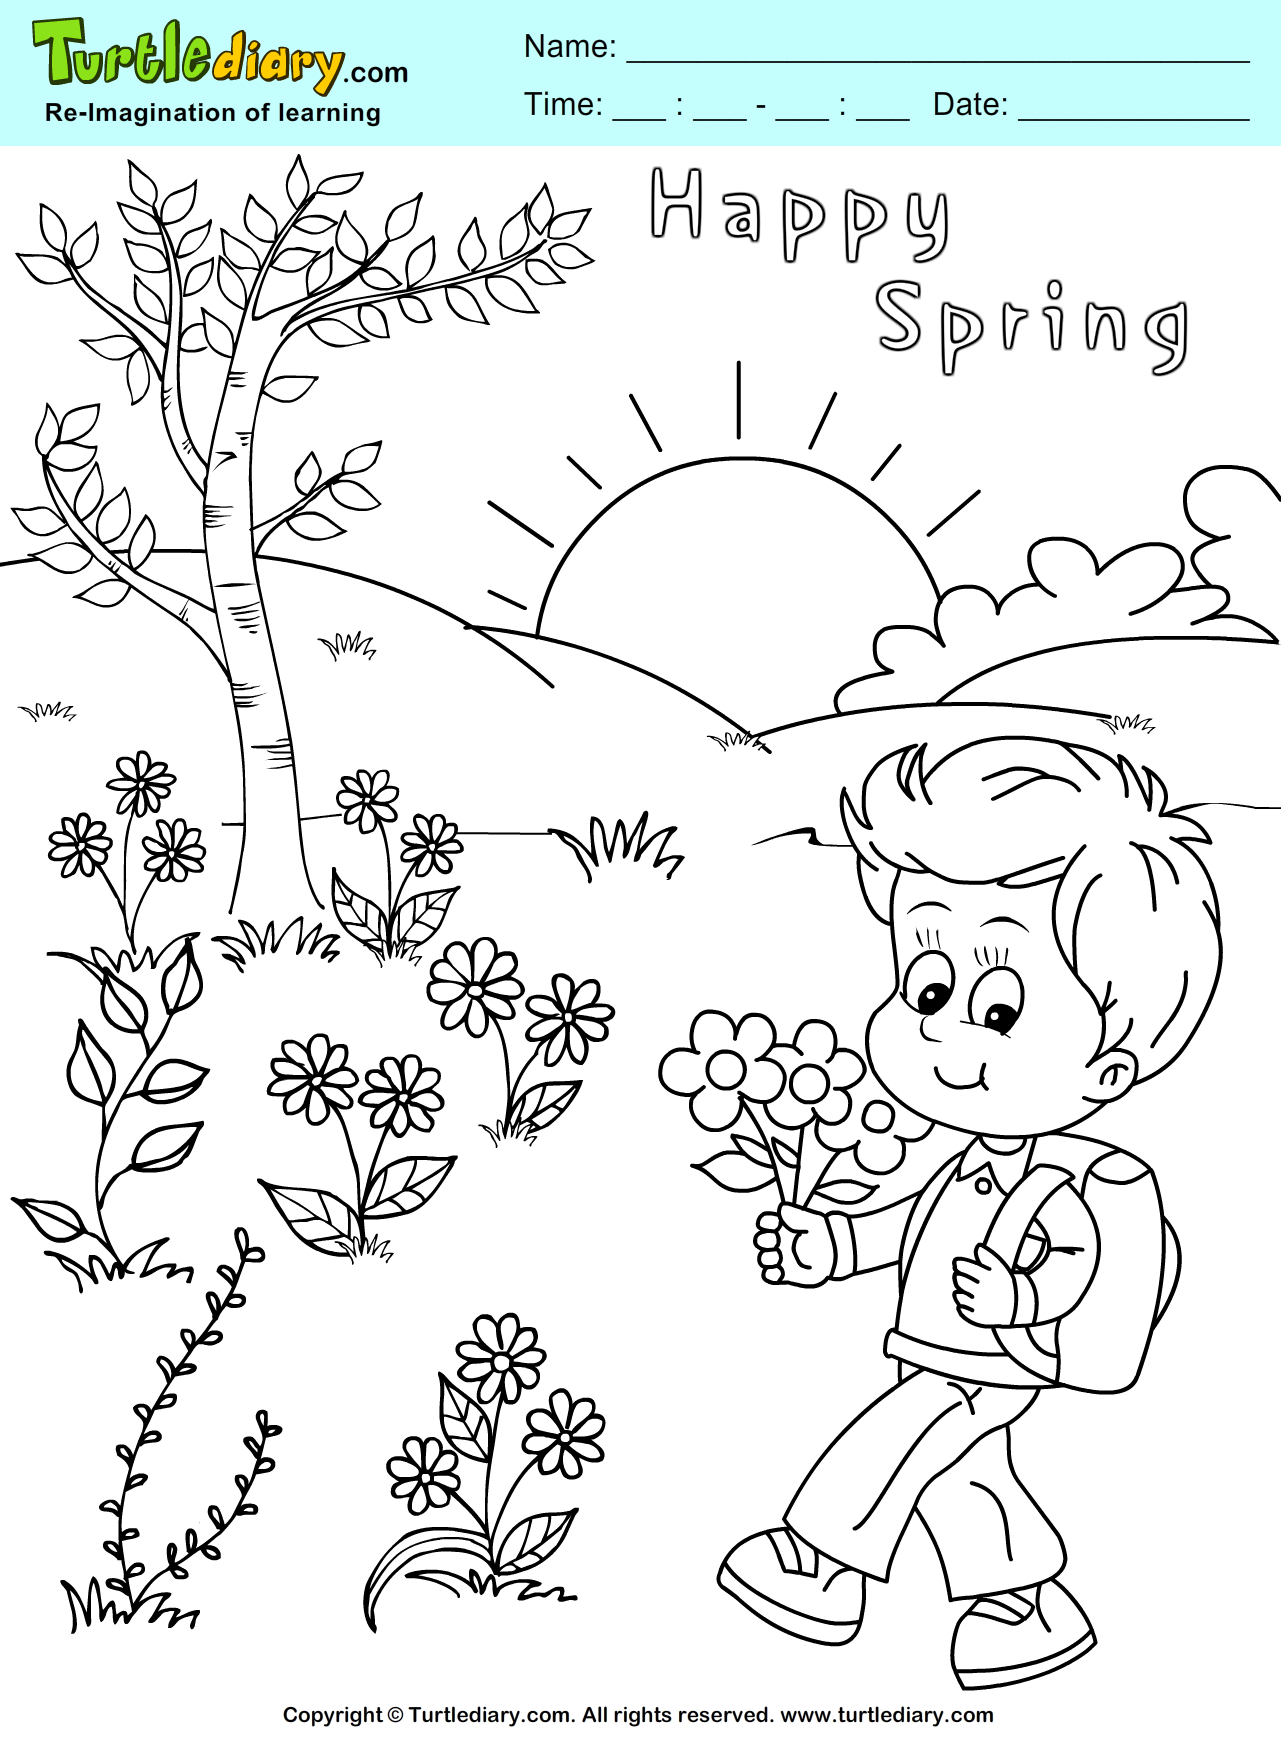 Happy Spring Coloring Page Kids Crafts Coloring